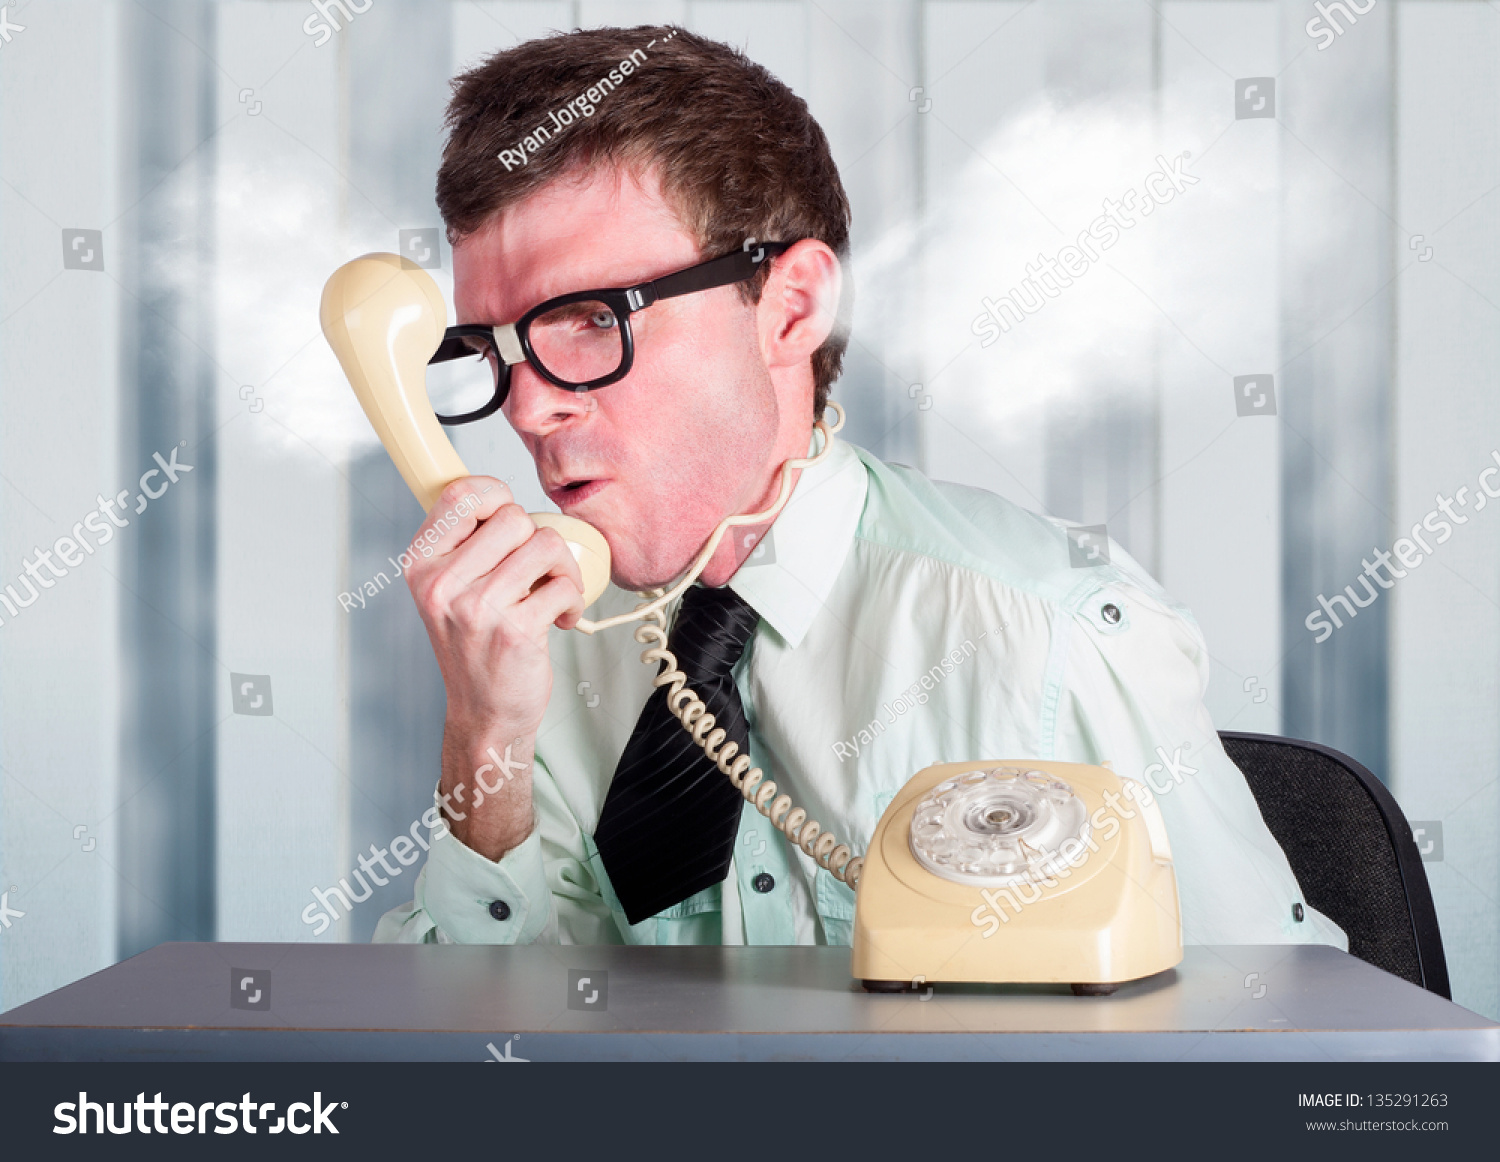 Frustrated office worker on the phone holding stock photo image - Steaming Angry Nerd Businessman Holding Retro Phone Cord Around Big Red Head While Shouting Out Demands